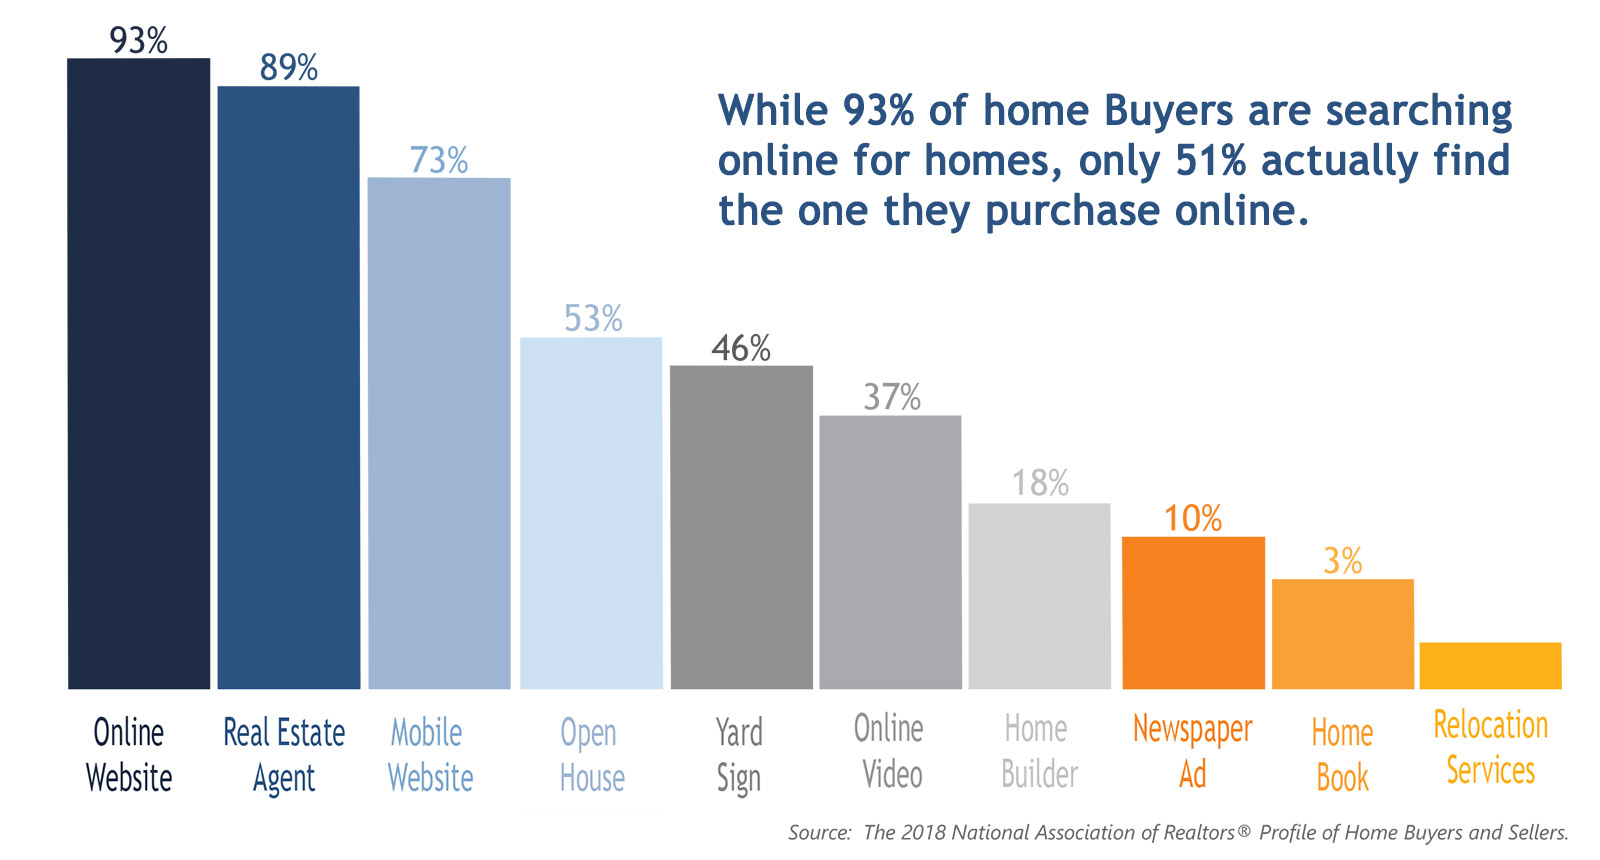 Marketing Your Home in All the way Homebuyers search.